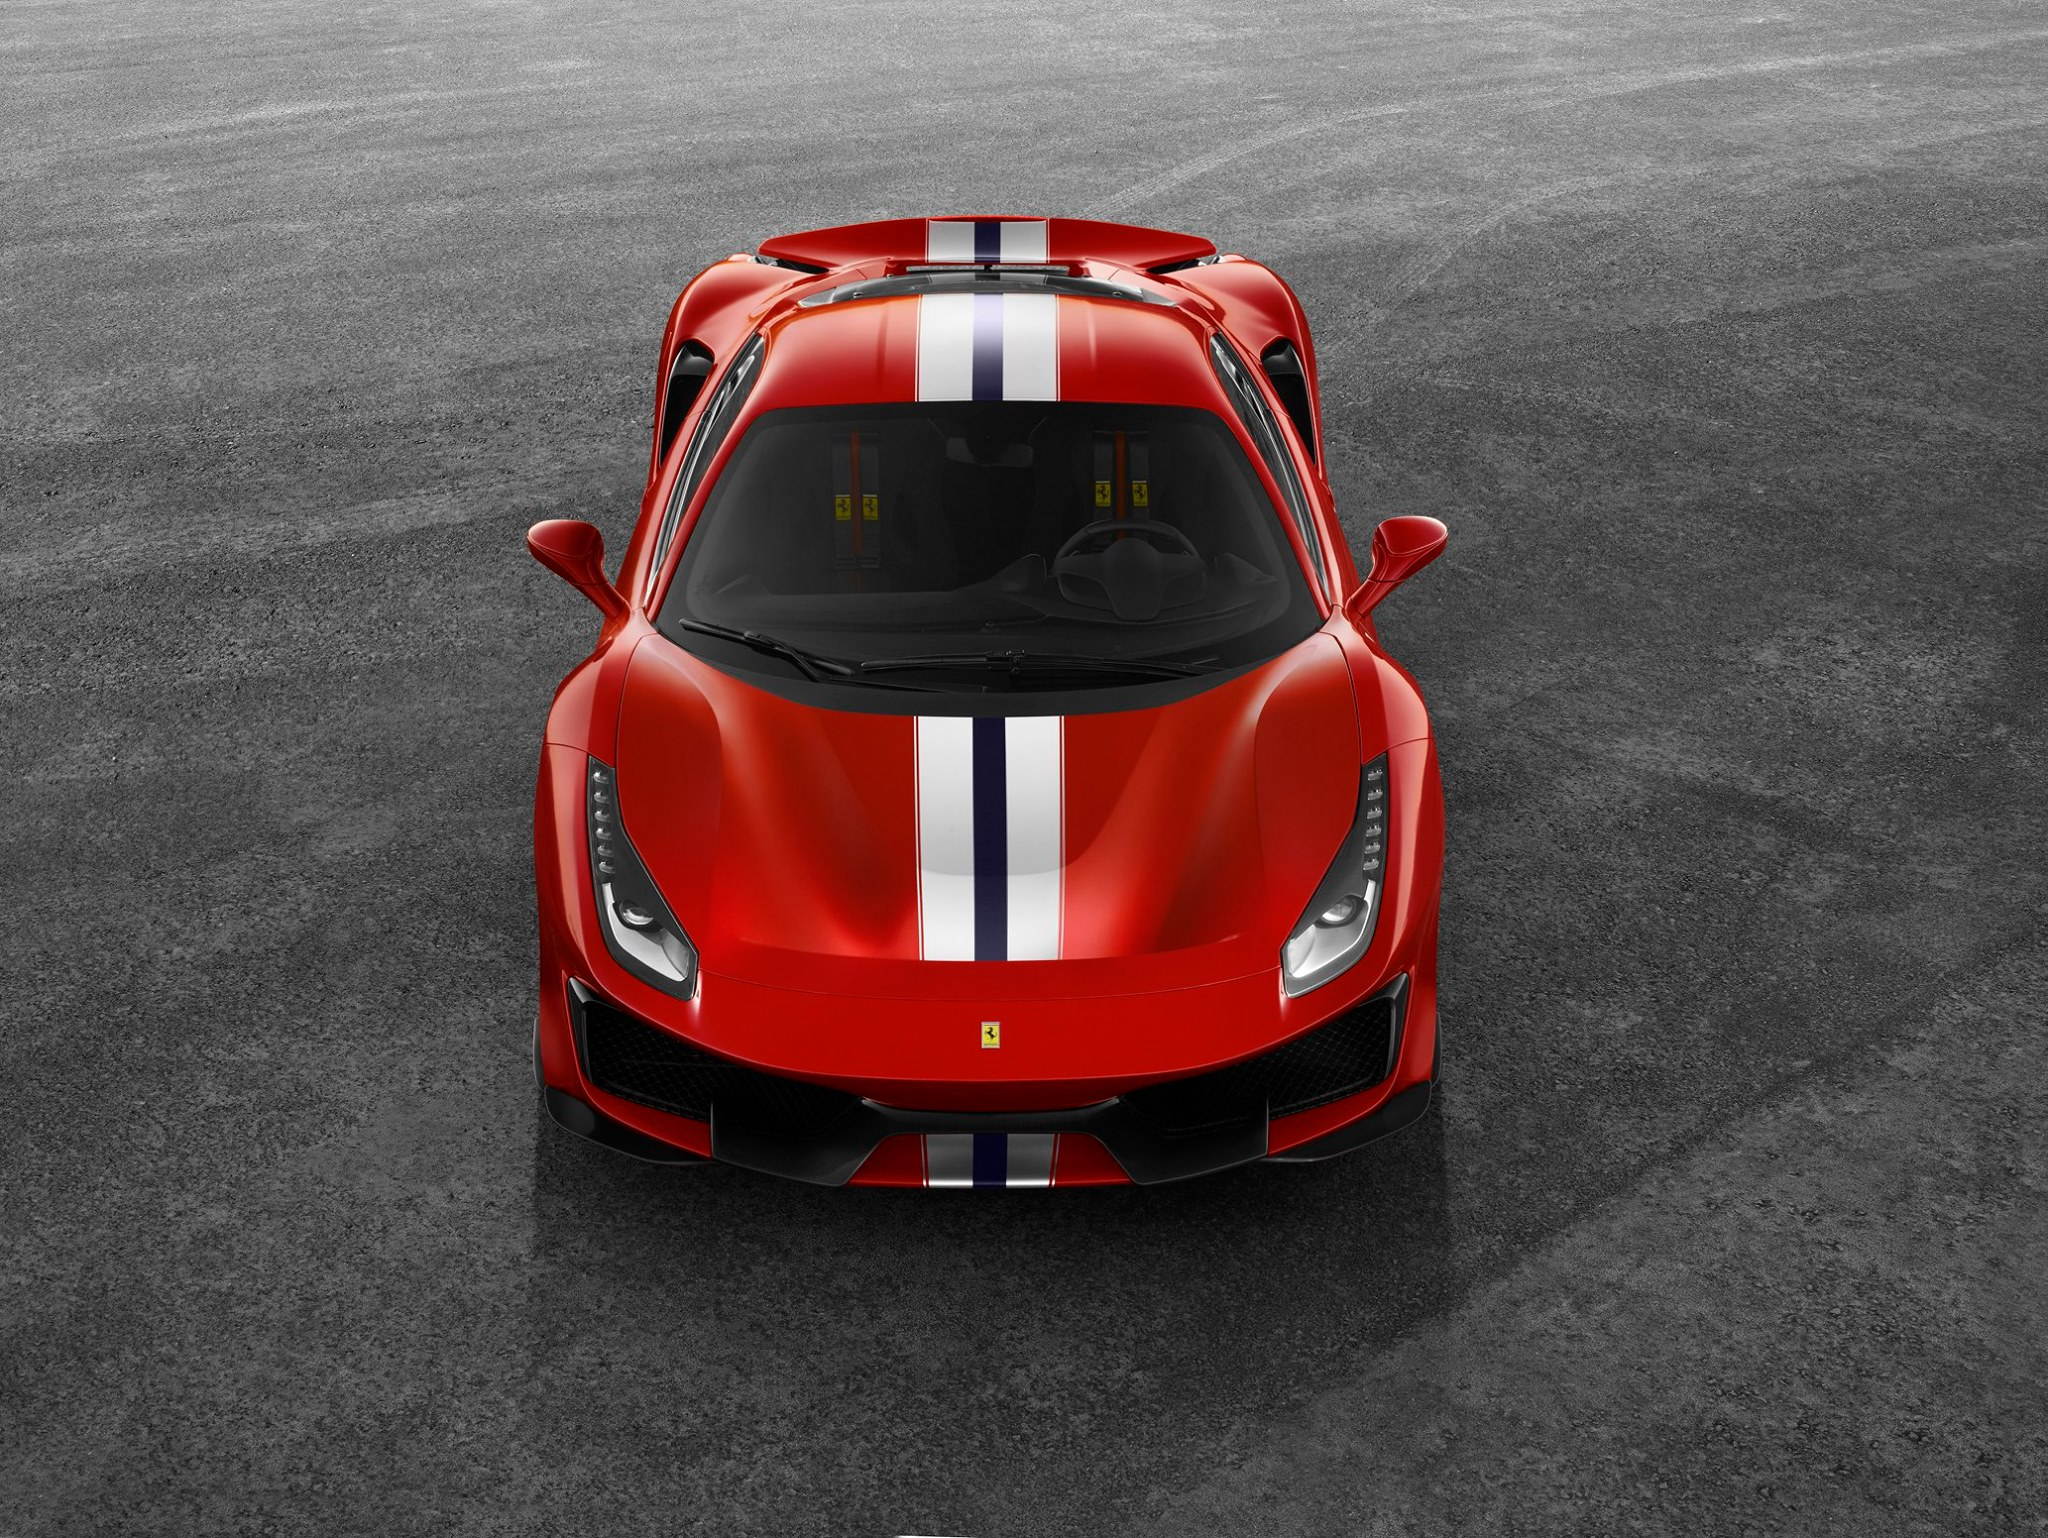 The Ferrari 488 Pista Master of Road and Track